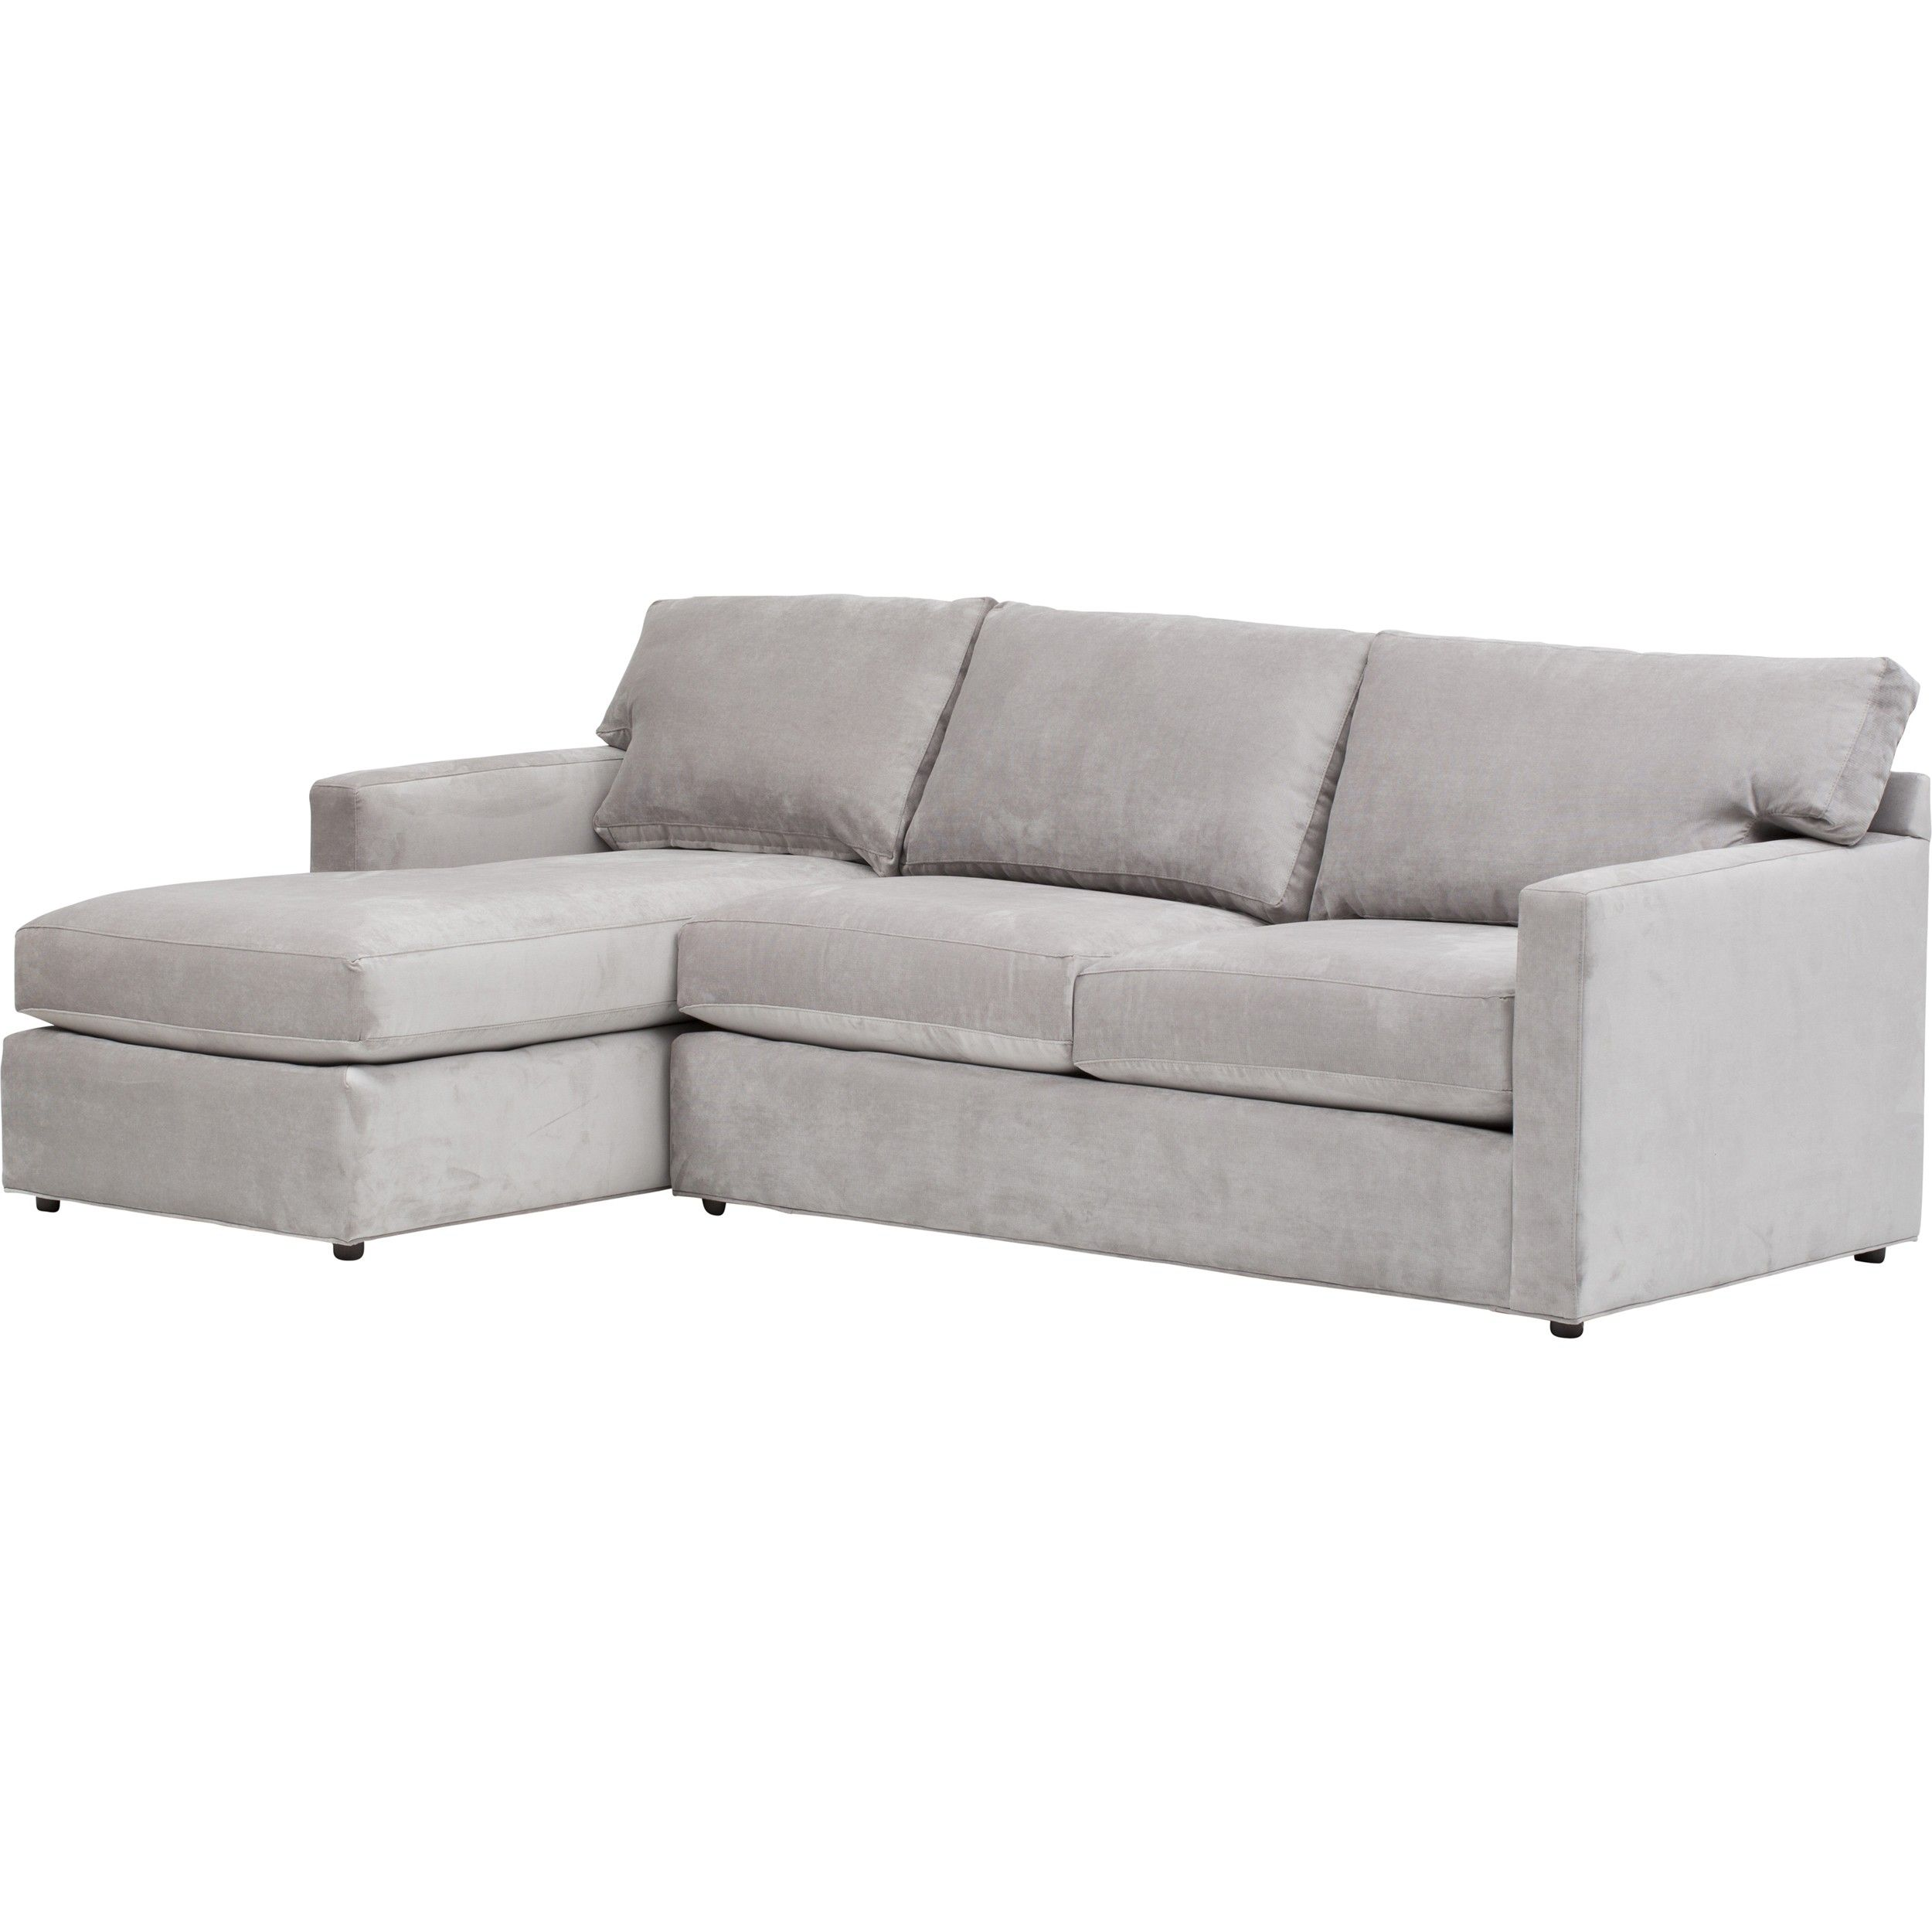 Tarin Sectional, Vote Platinum - Sofas - Furniture | Stuff for New ...